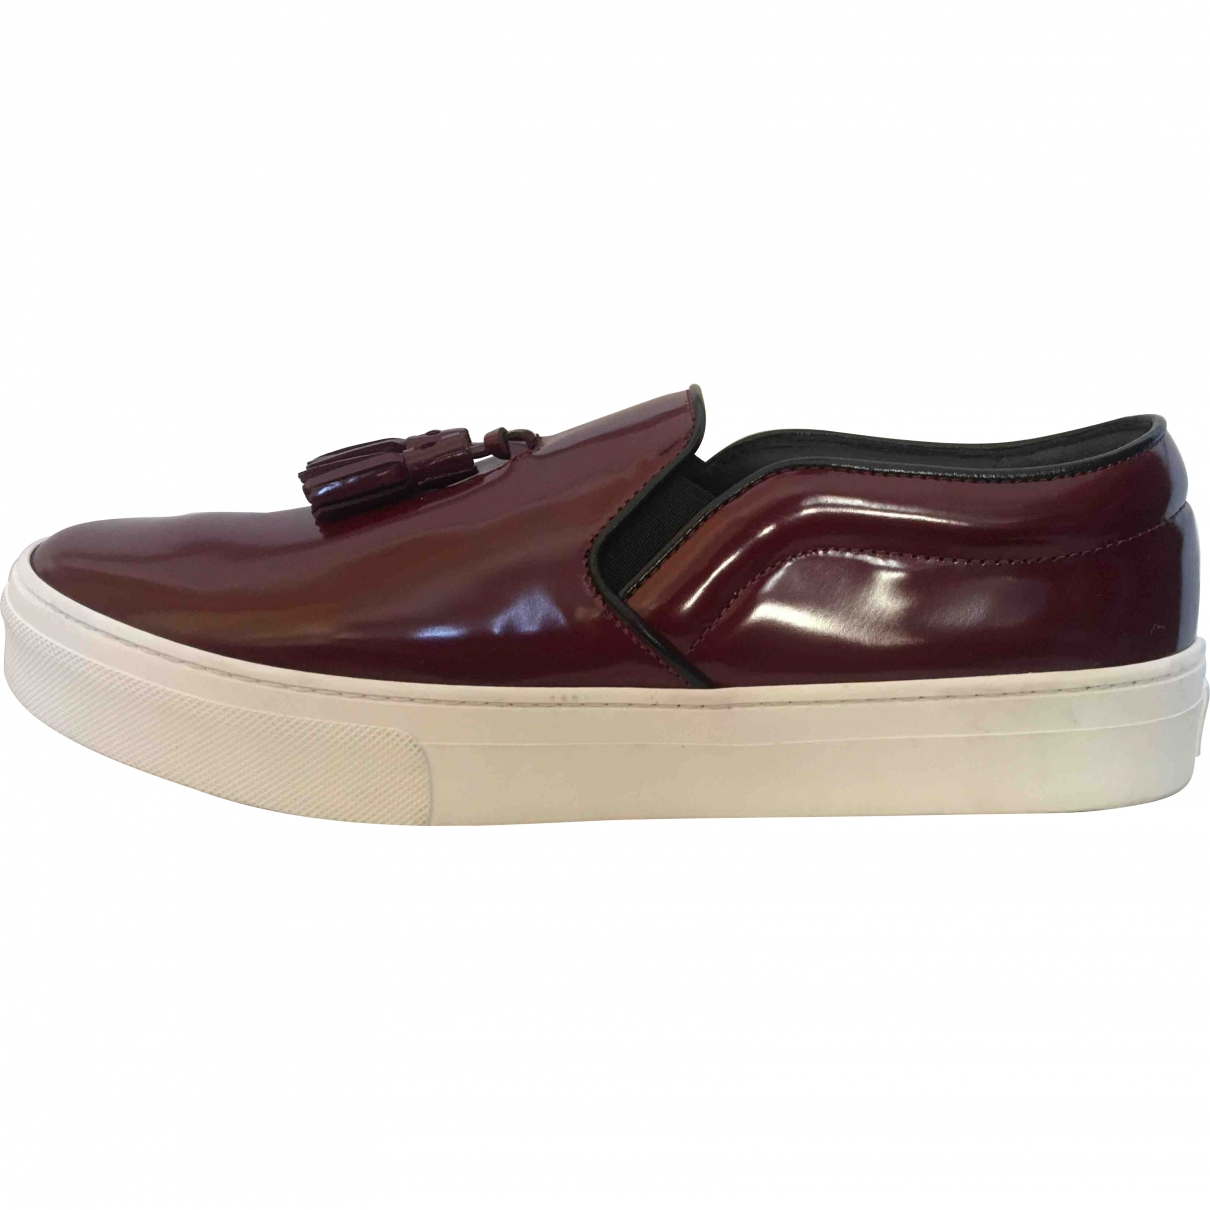 Celine \N Burgundy Patent leather Trainers for Women 40.5 EU